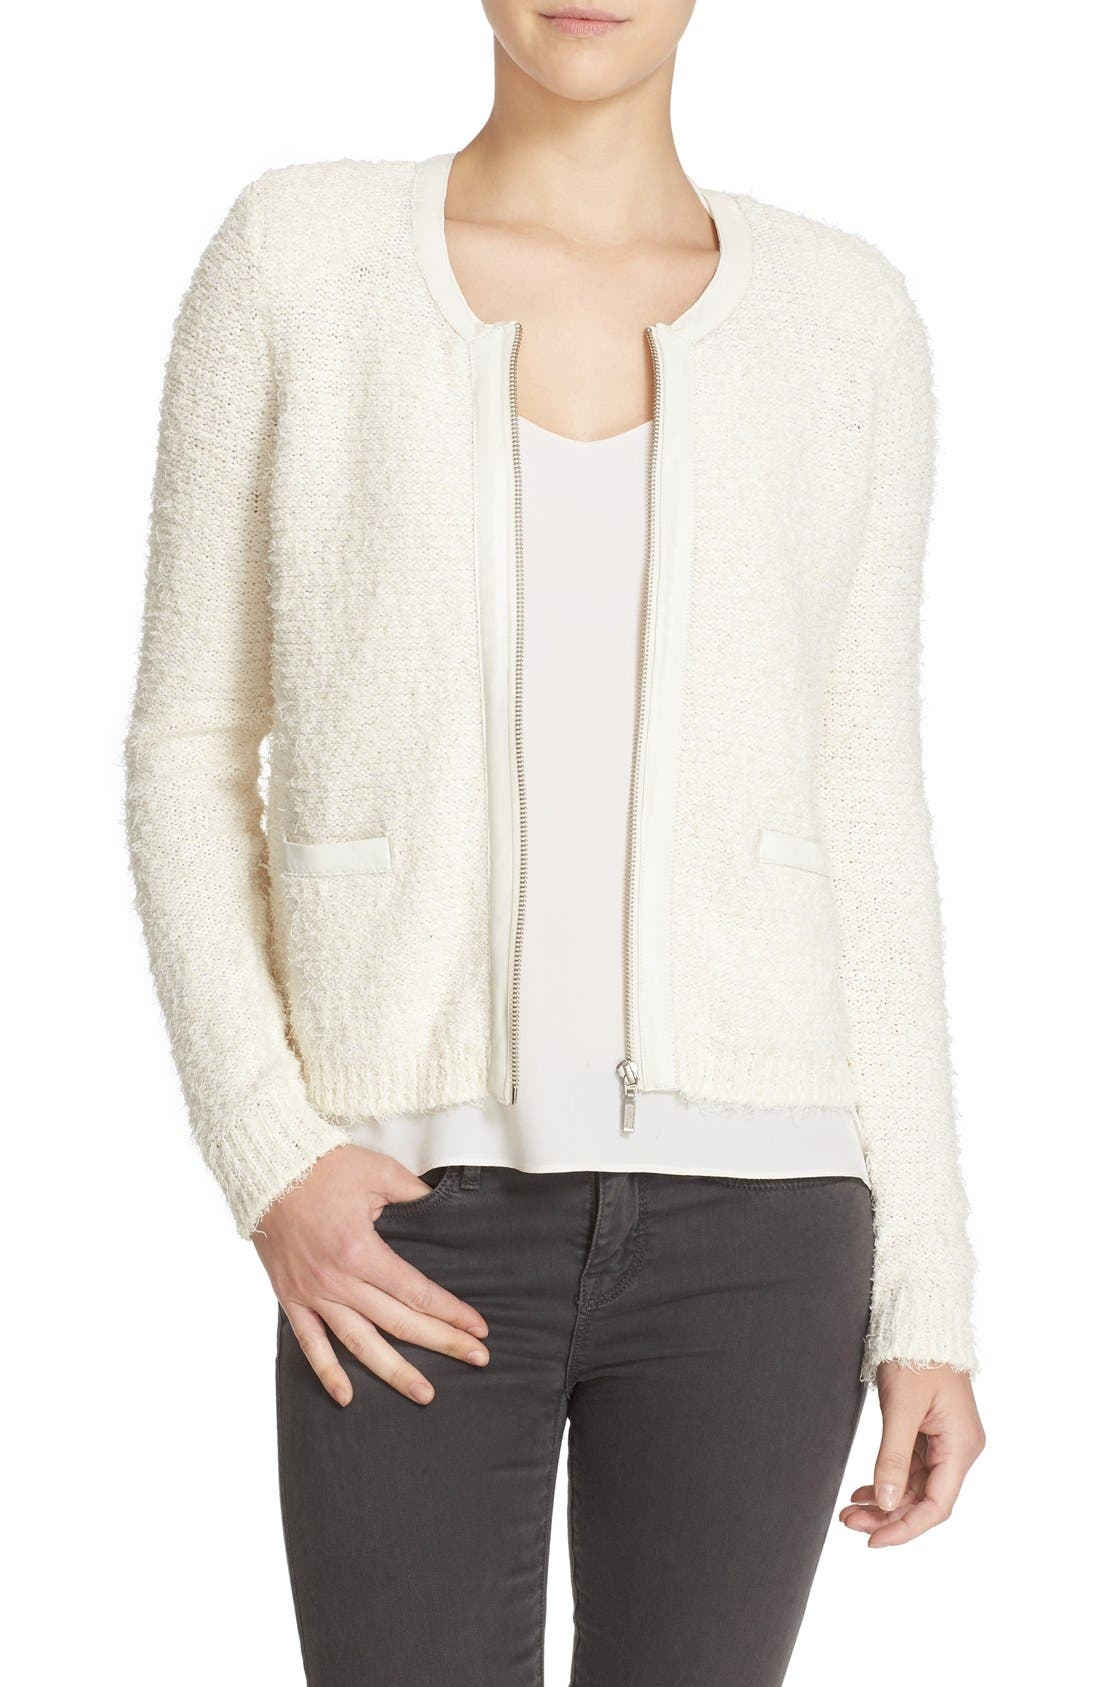 Main Image - Joie 'Jacolyn B' Leather Trim Cardigan